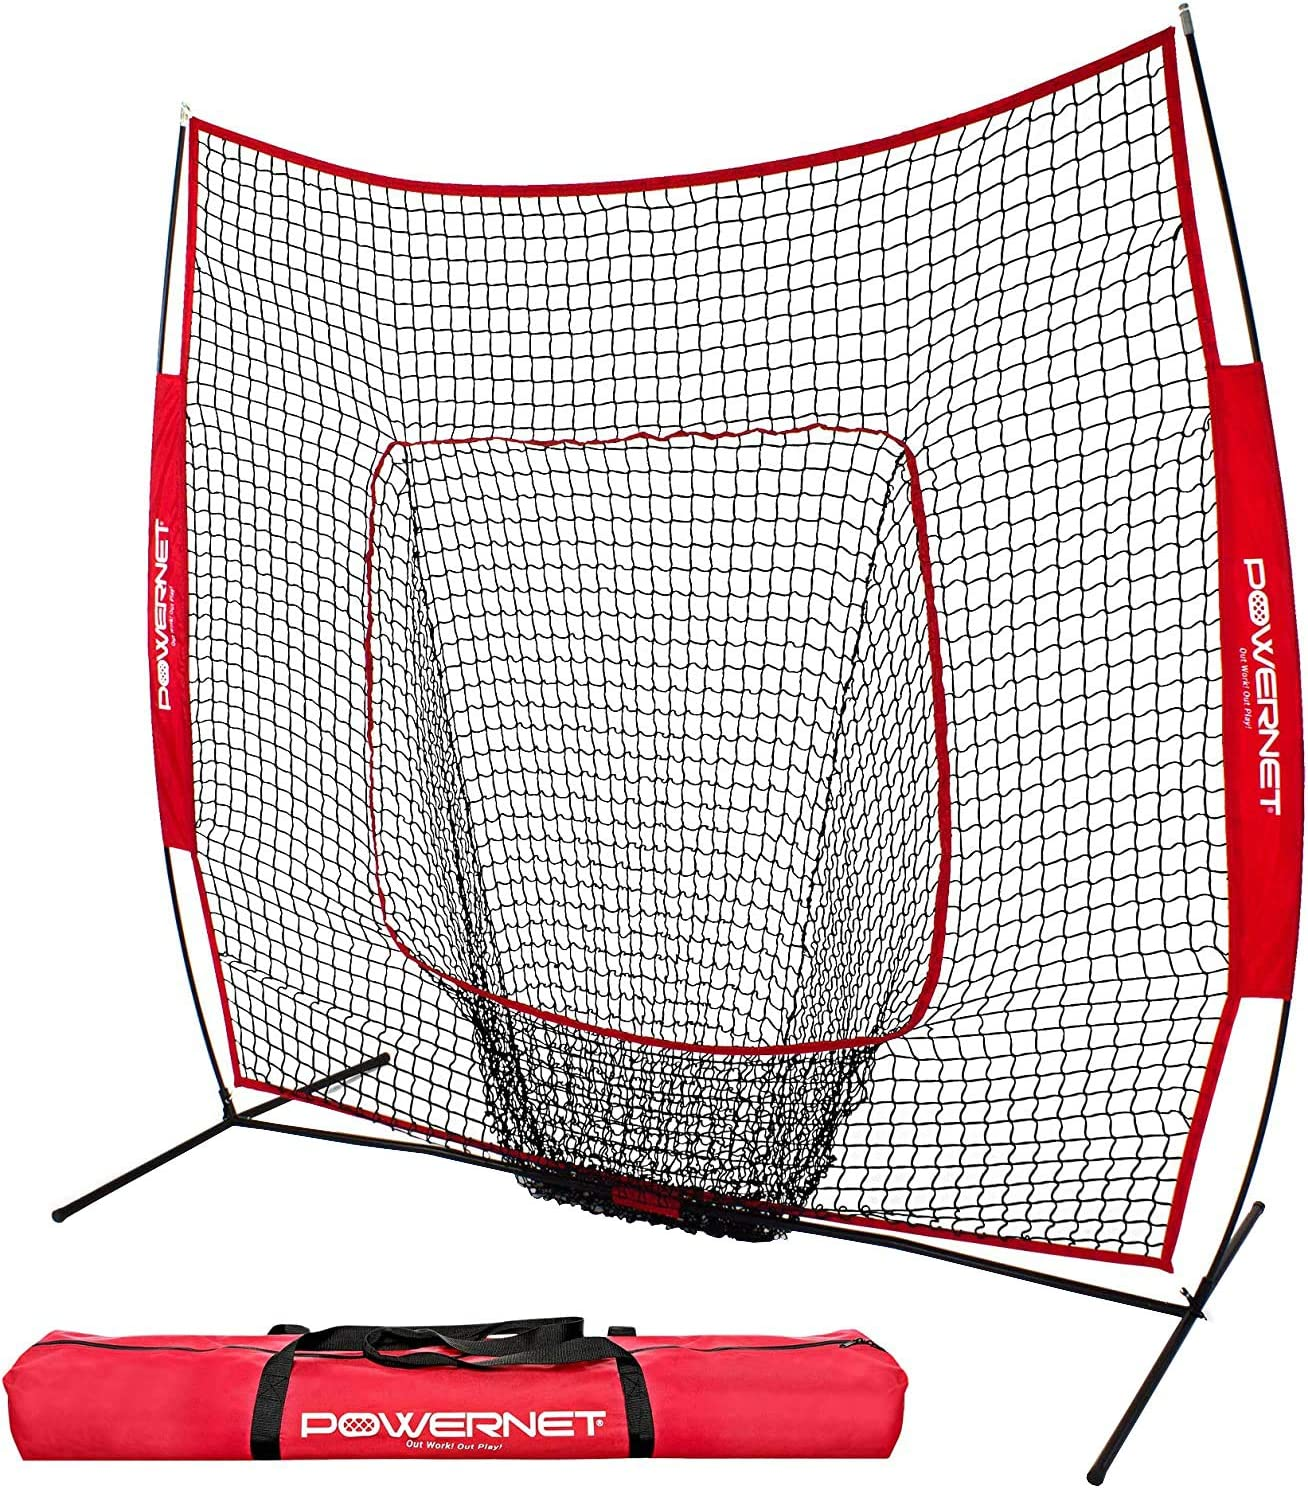 Amazon Com Powernet Baseball And Softball Practice Net 7 X 7 With Bow Frame Sports Outdoors